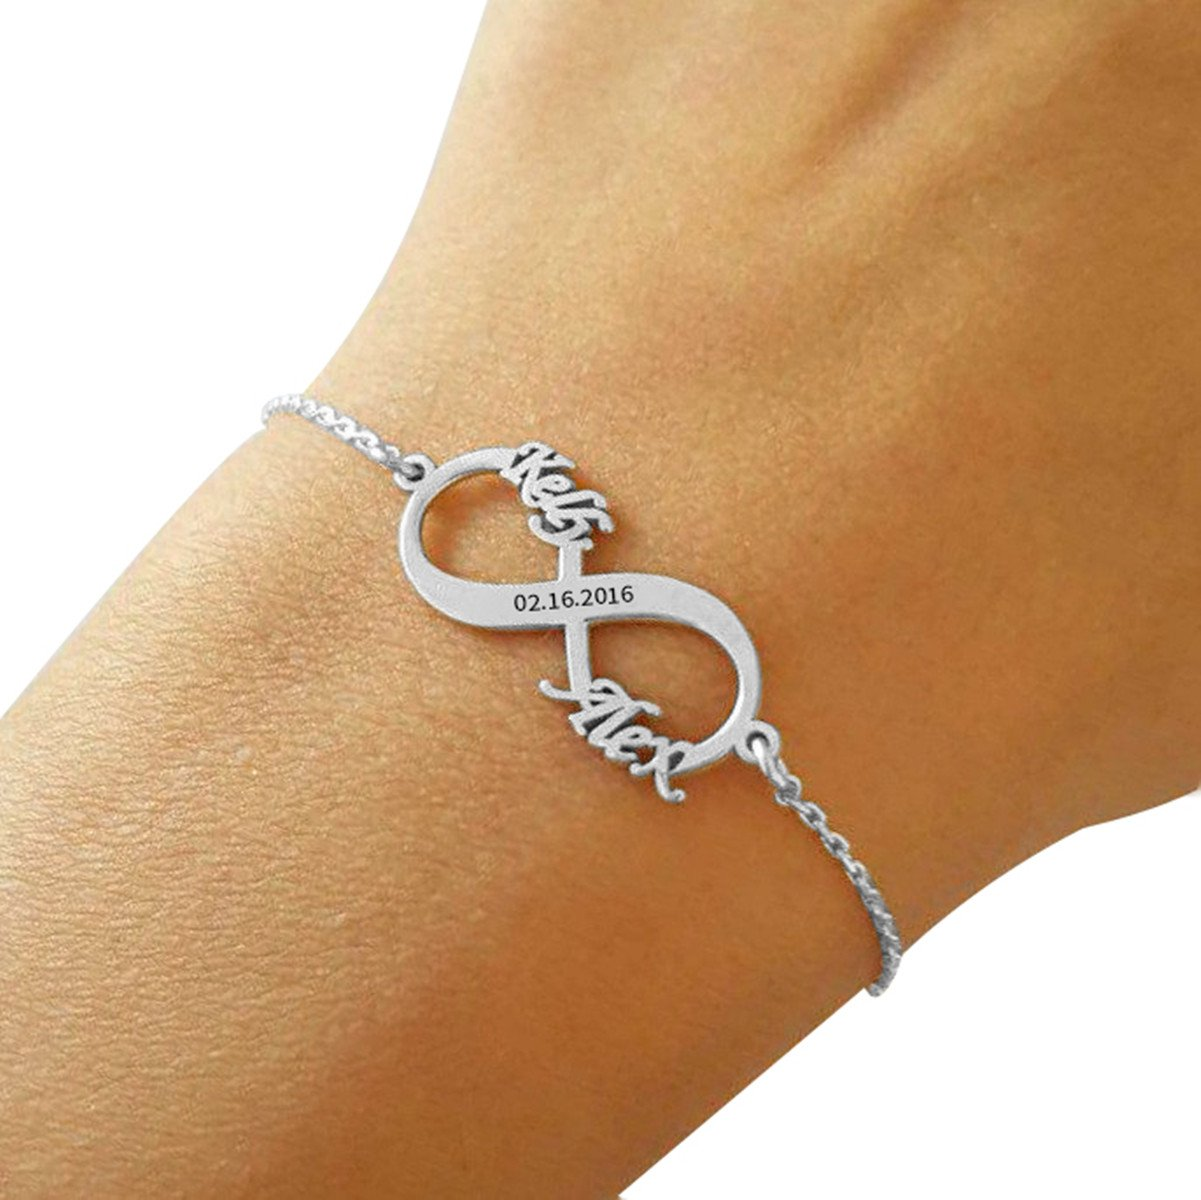 Ouslier Personalized 925 Sterling Silver Infinity Bracelet Custom Made with 2 Names & Dates (Silver)